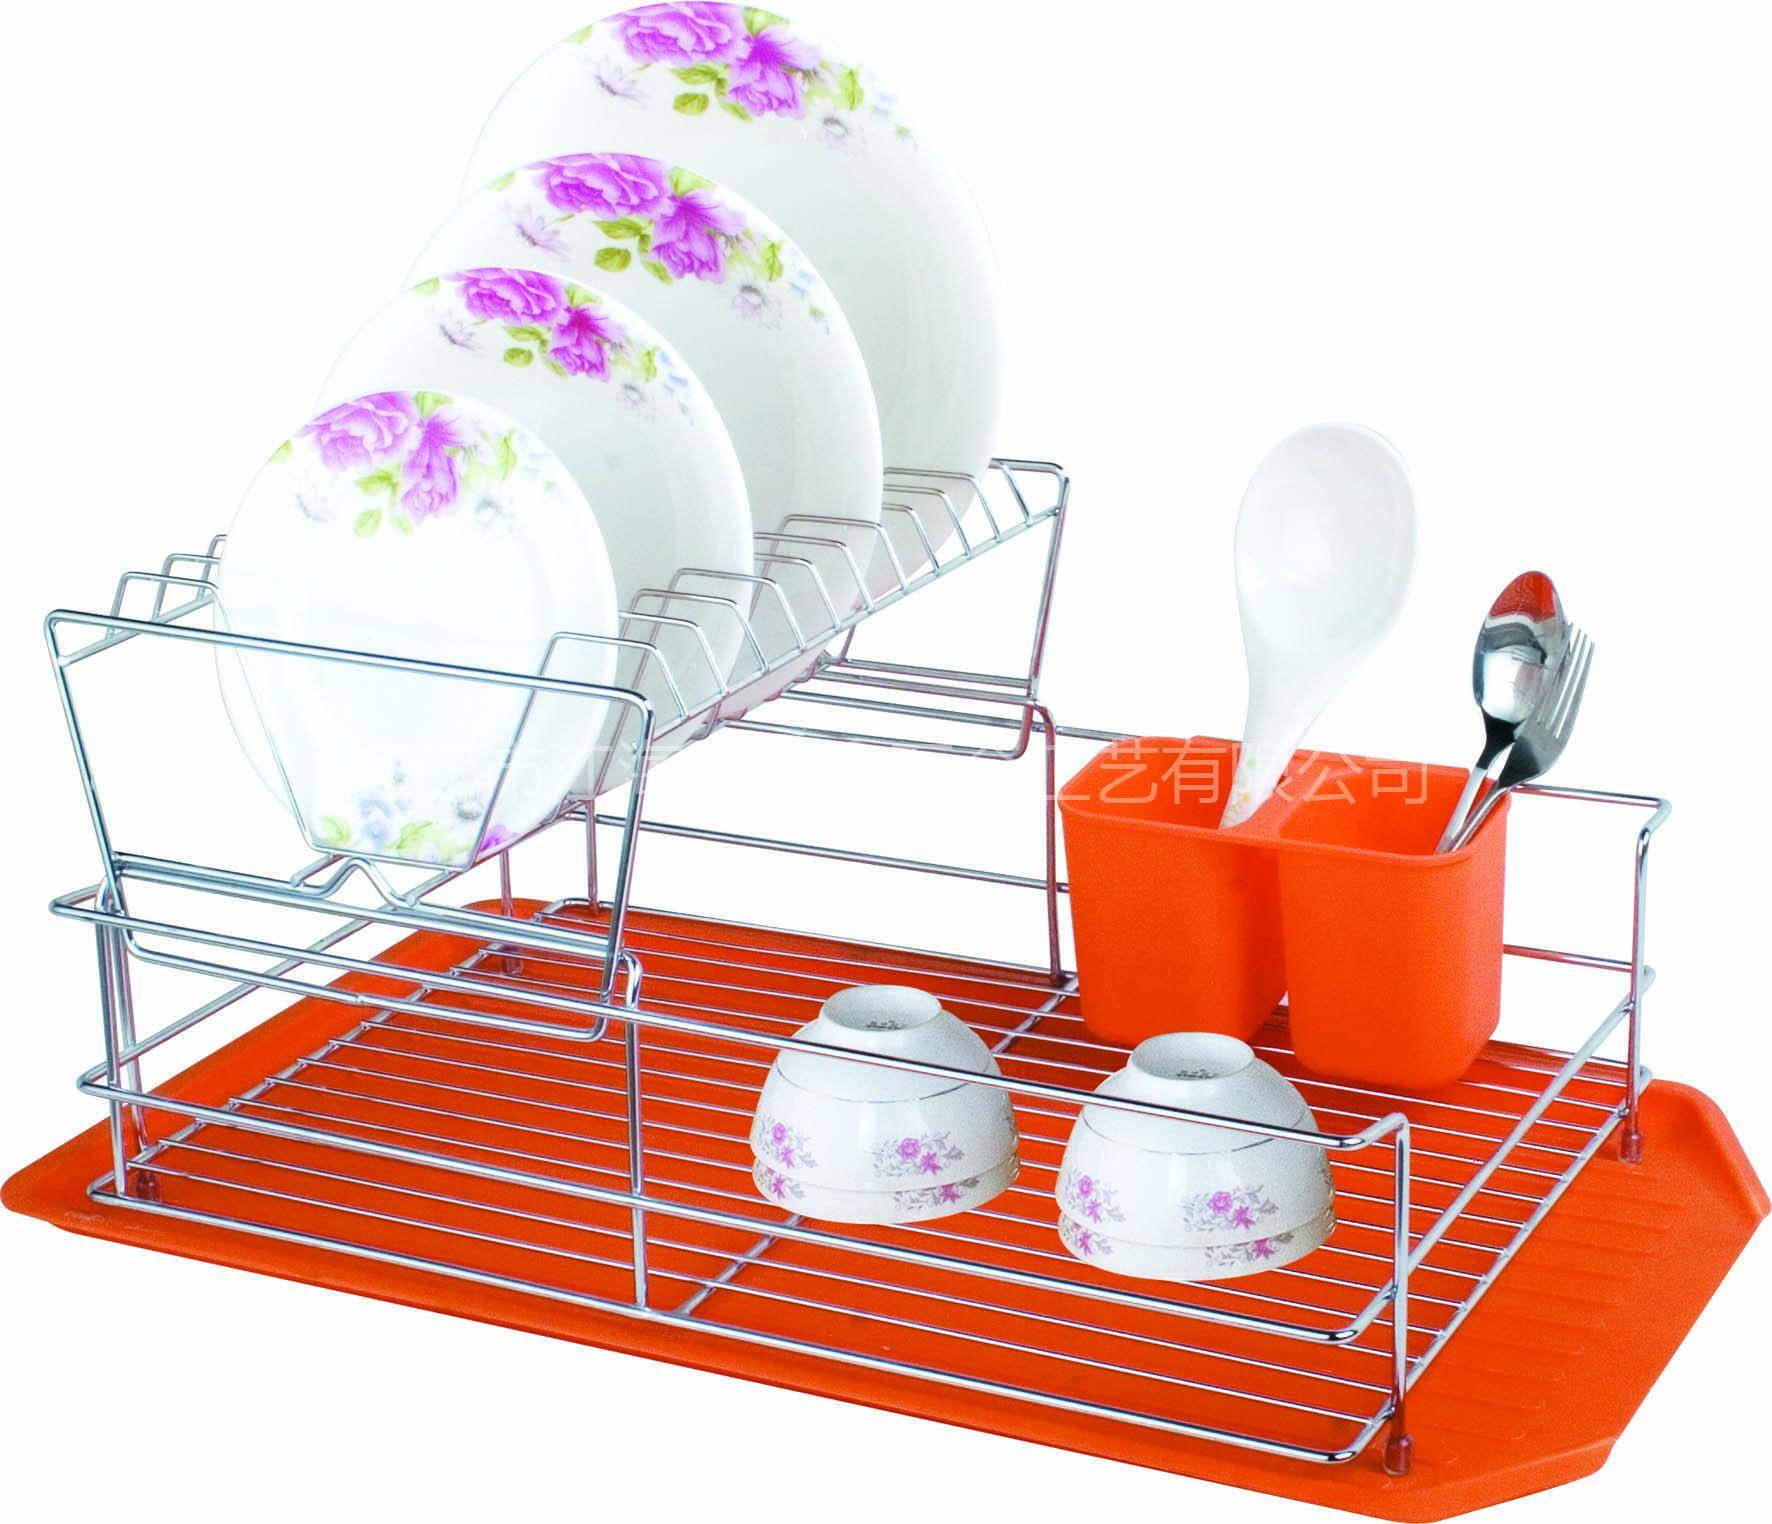 Kitchen Accessories Dish Racks | Silly Decorations